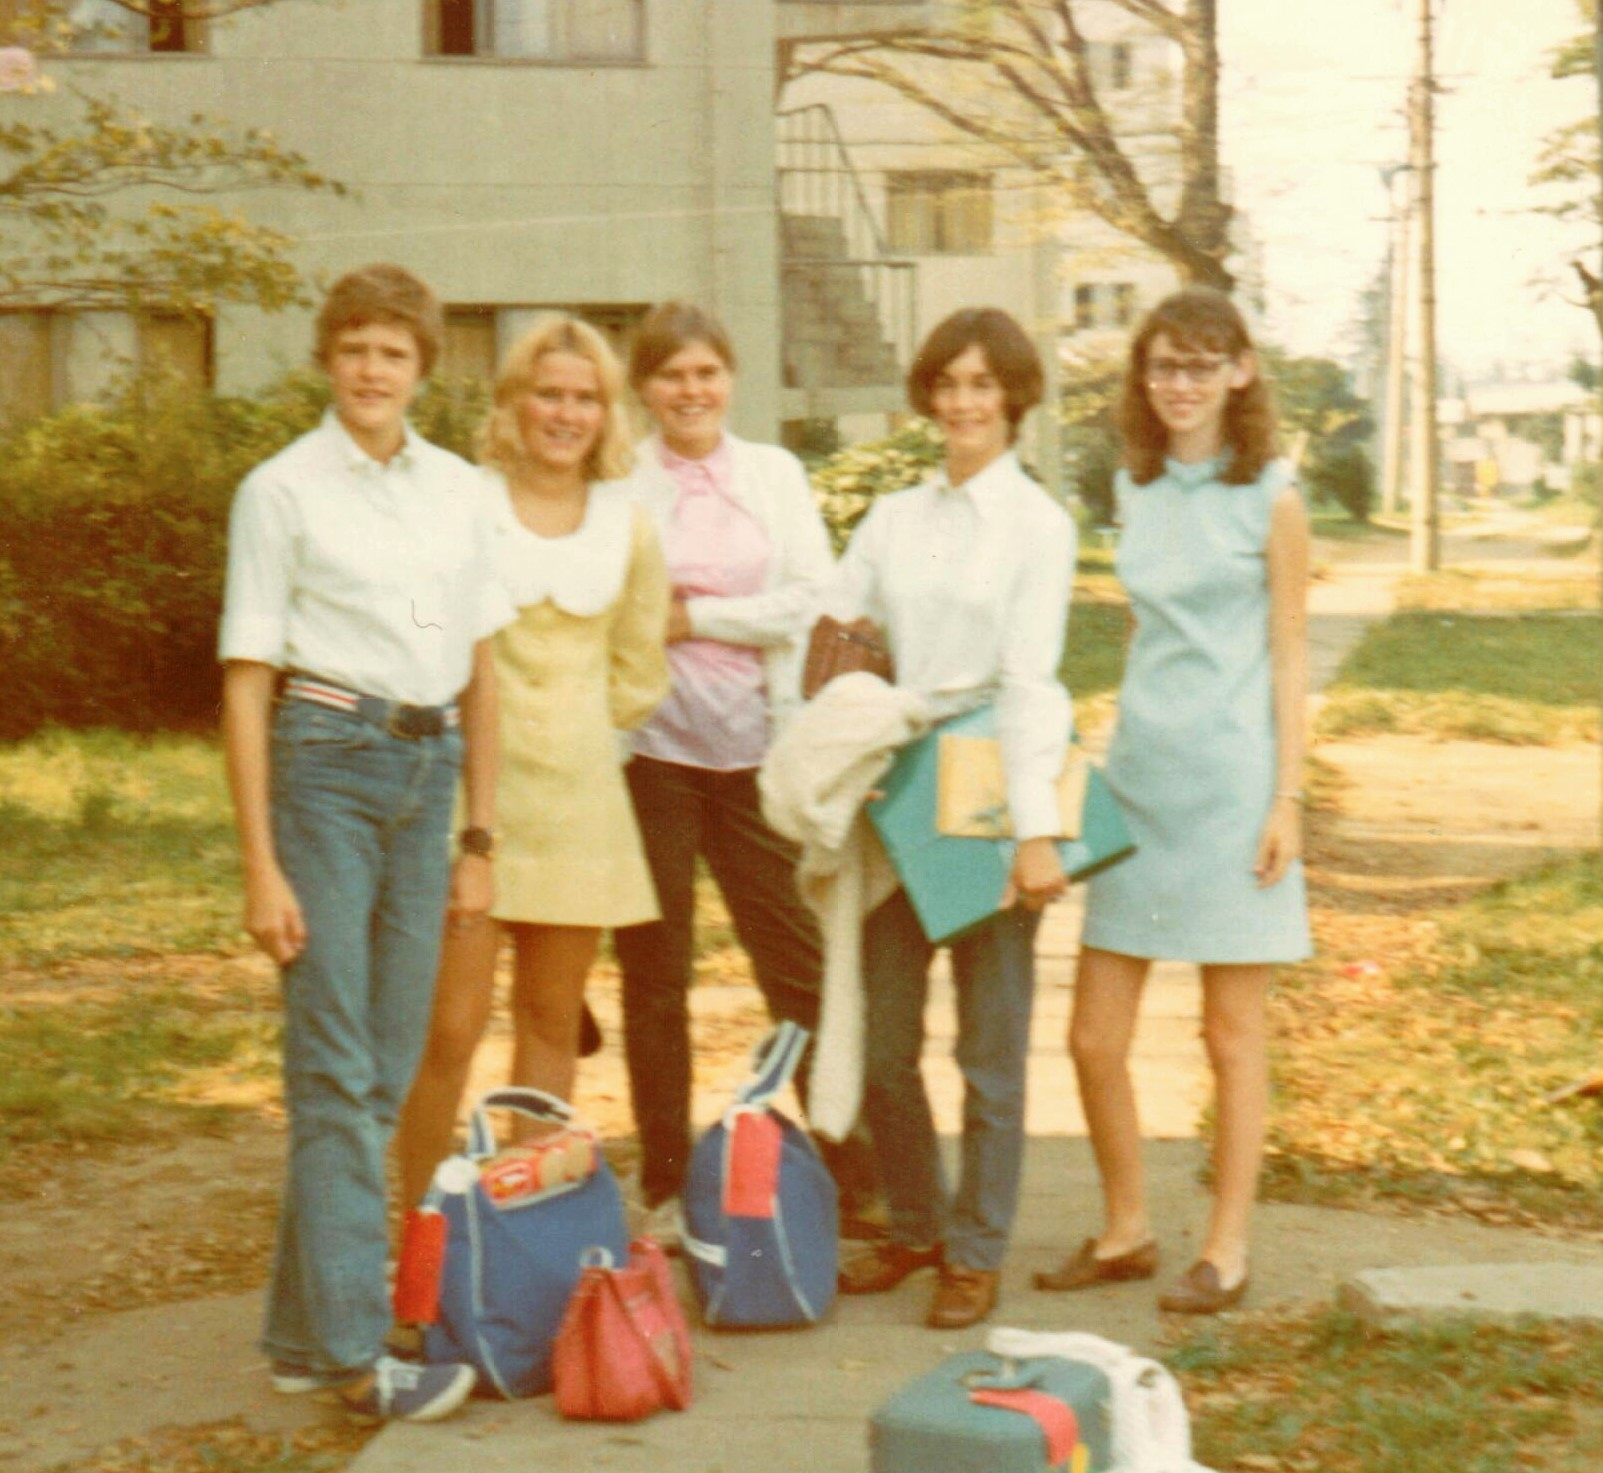 OSAKA EXPO 1970 – submitted by Donna Russell, Class of '71